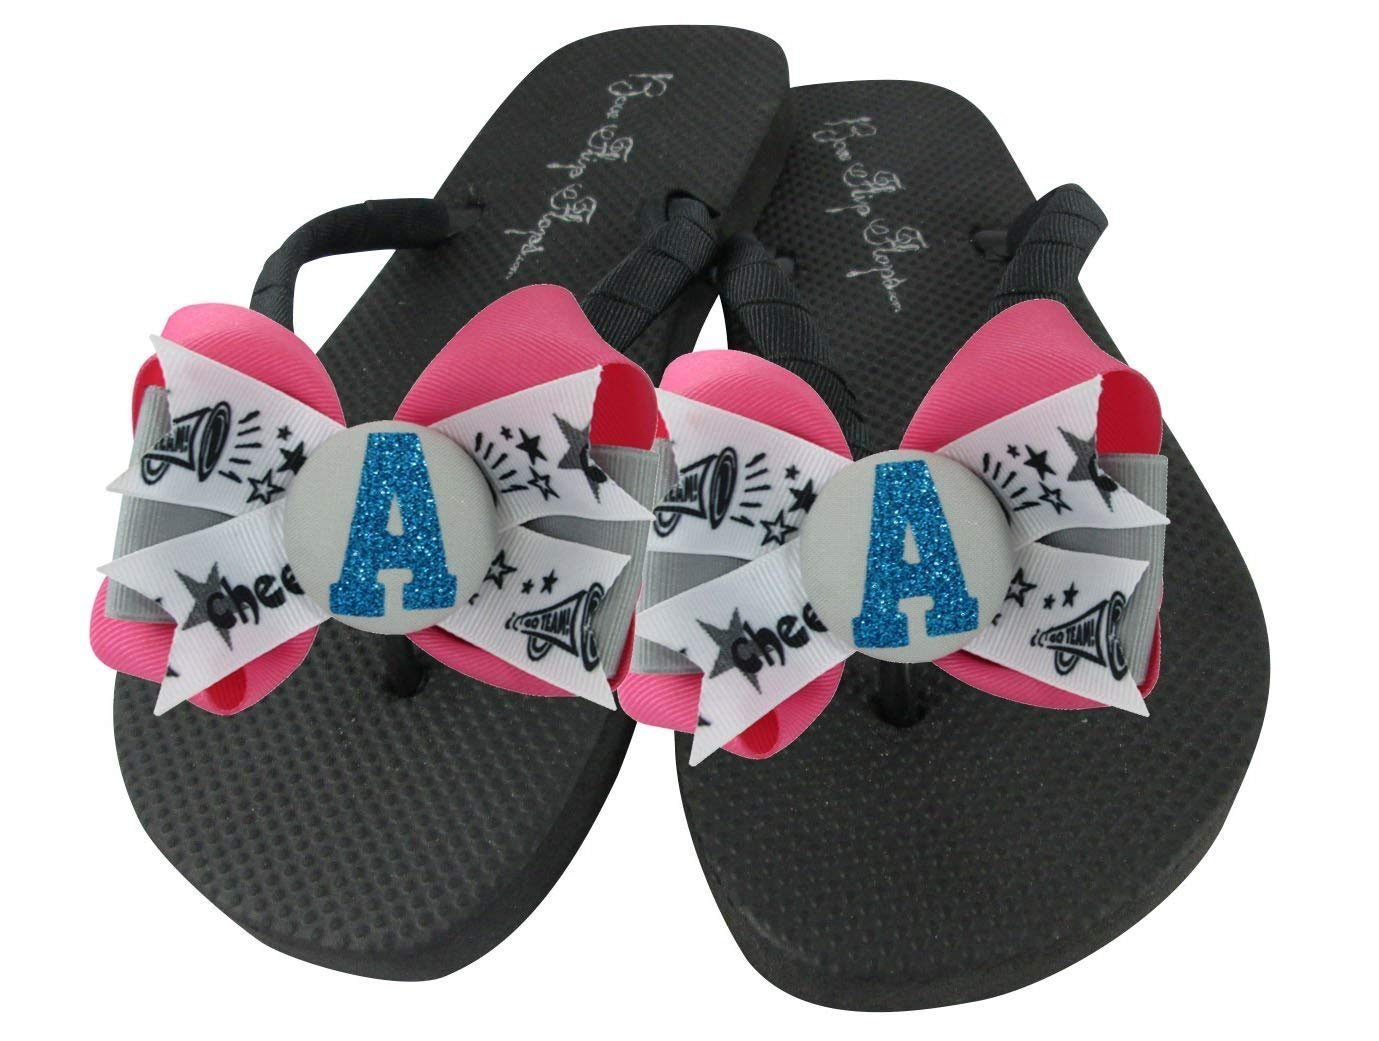 cfc6588a9a14 Get Quotations · Cheer Bow Flip Flops - Pink   Turquoise or Choose Ribbon    Glitter Colors